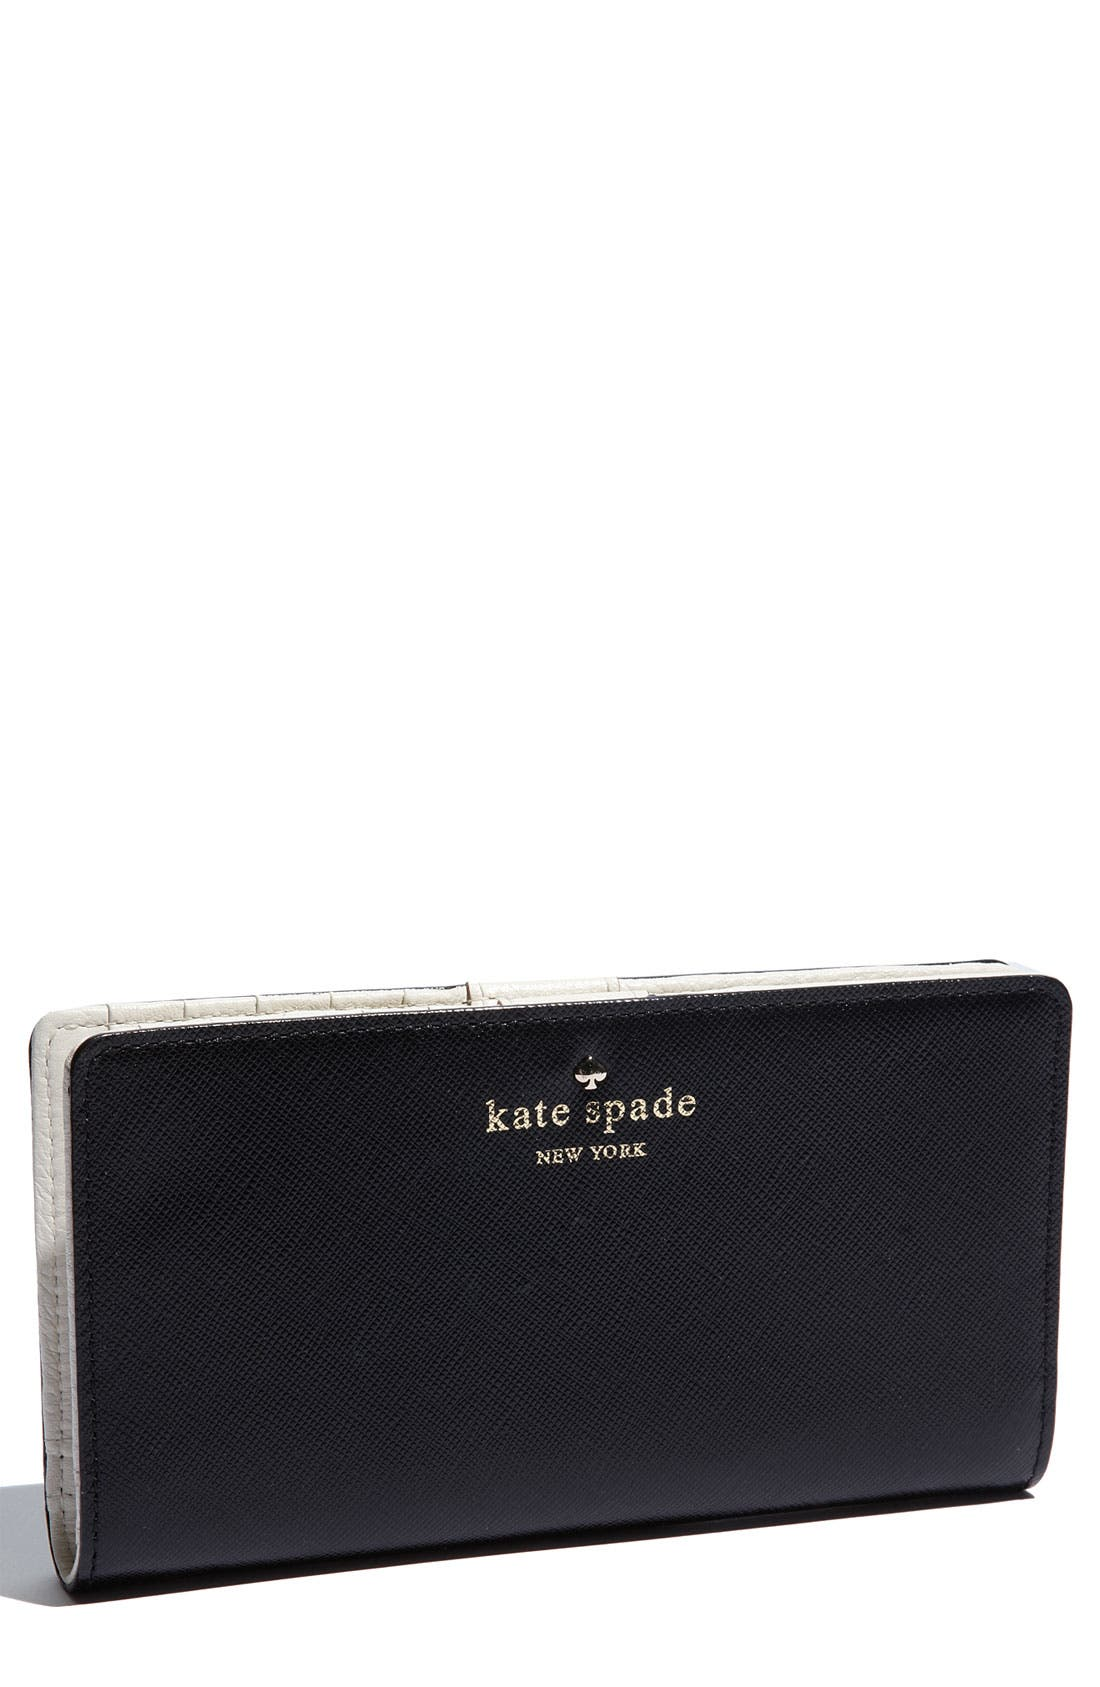 Main Image - kate spade new york 'mikas pond - stacy' wallet